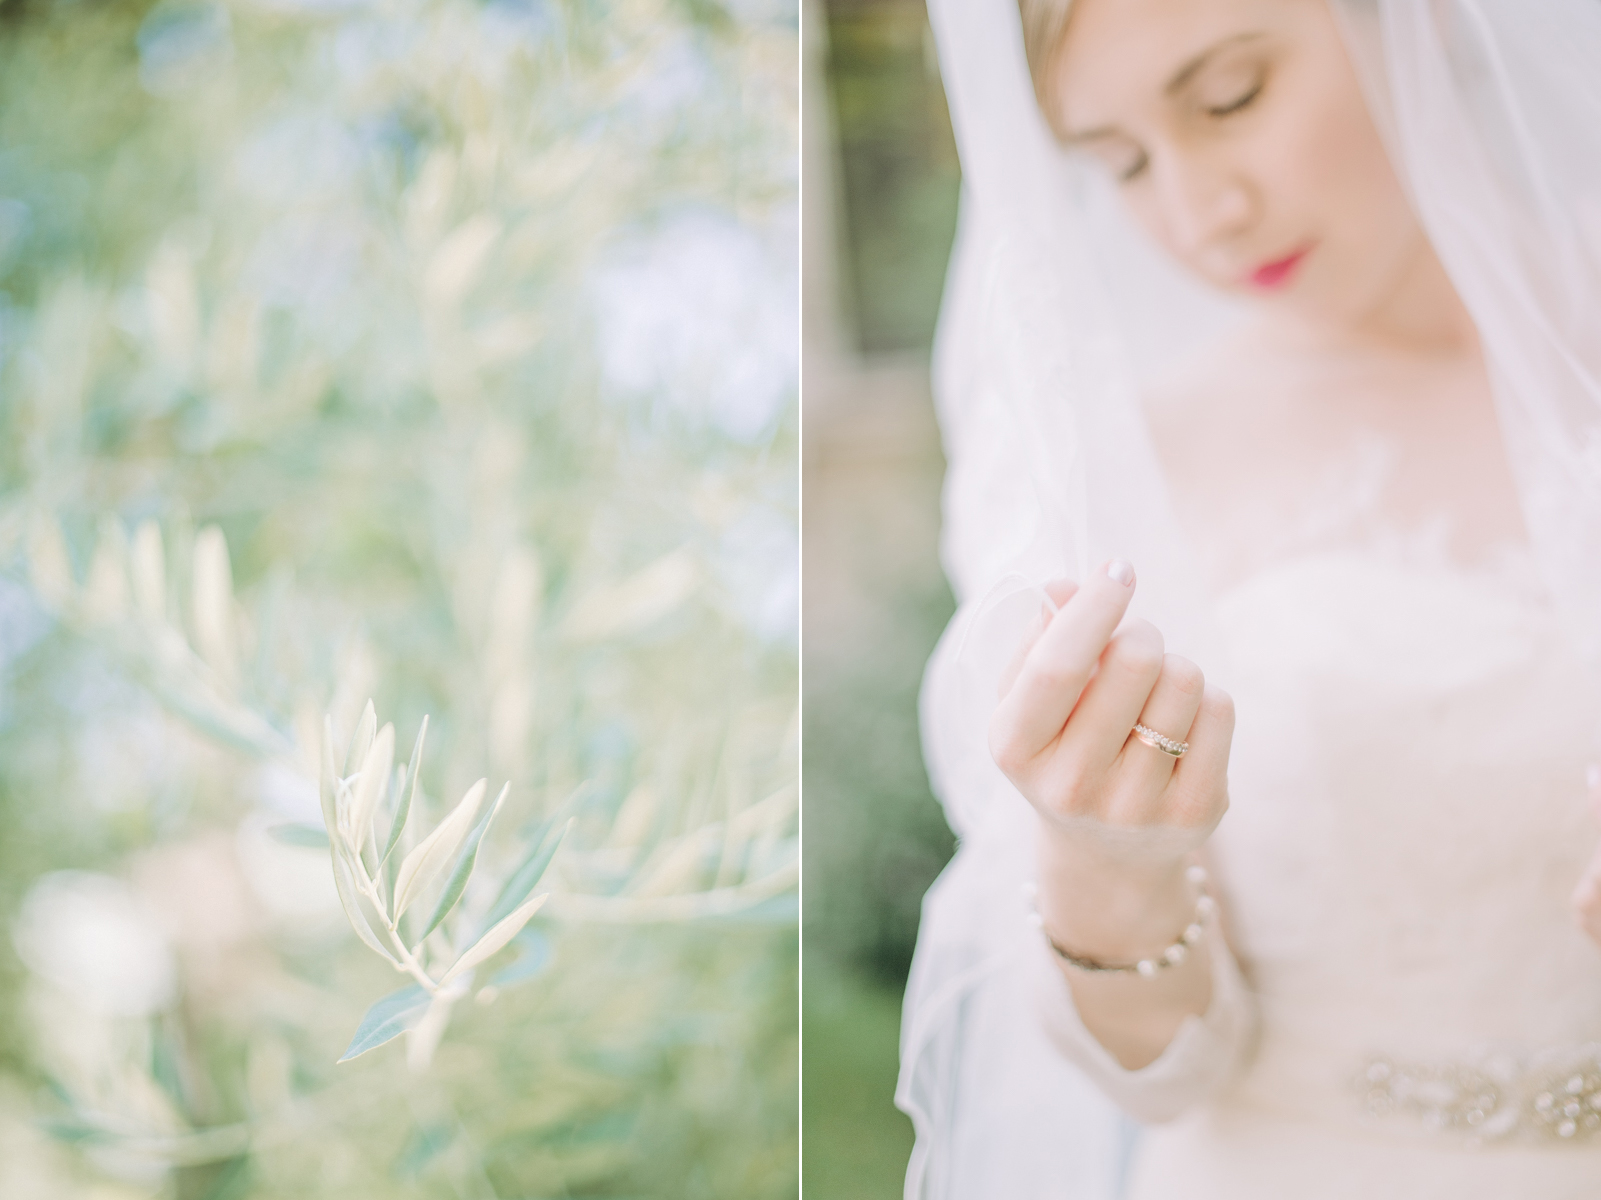 Boheme Moon Fine Art Wedding Photography - Romantic Bridal Portraits in Zurich, Schweiz